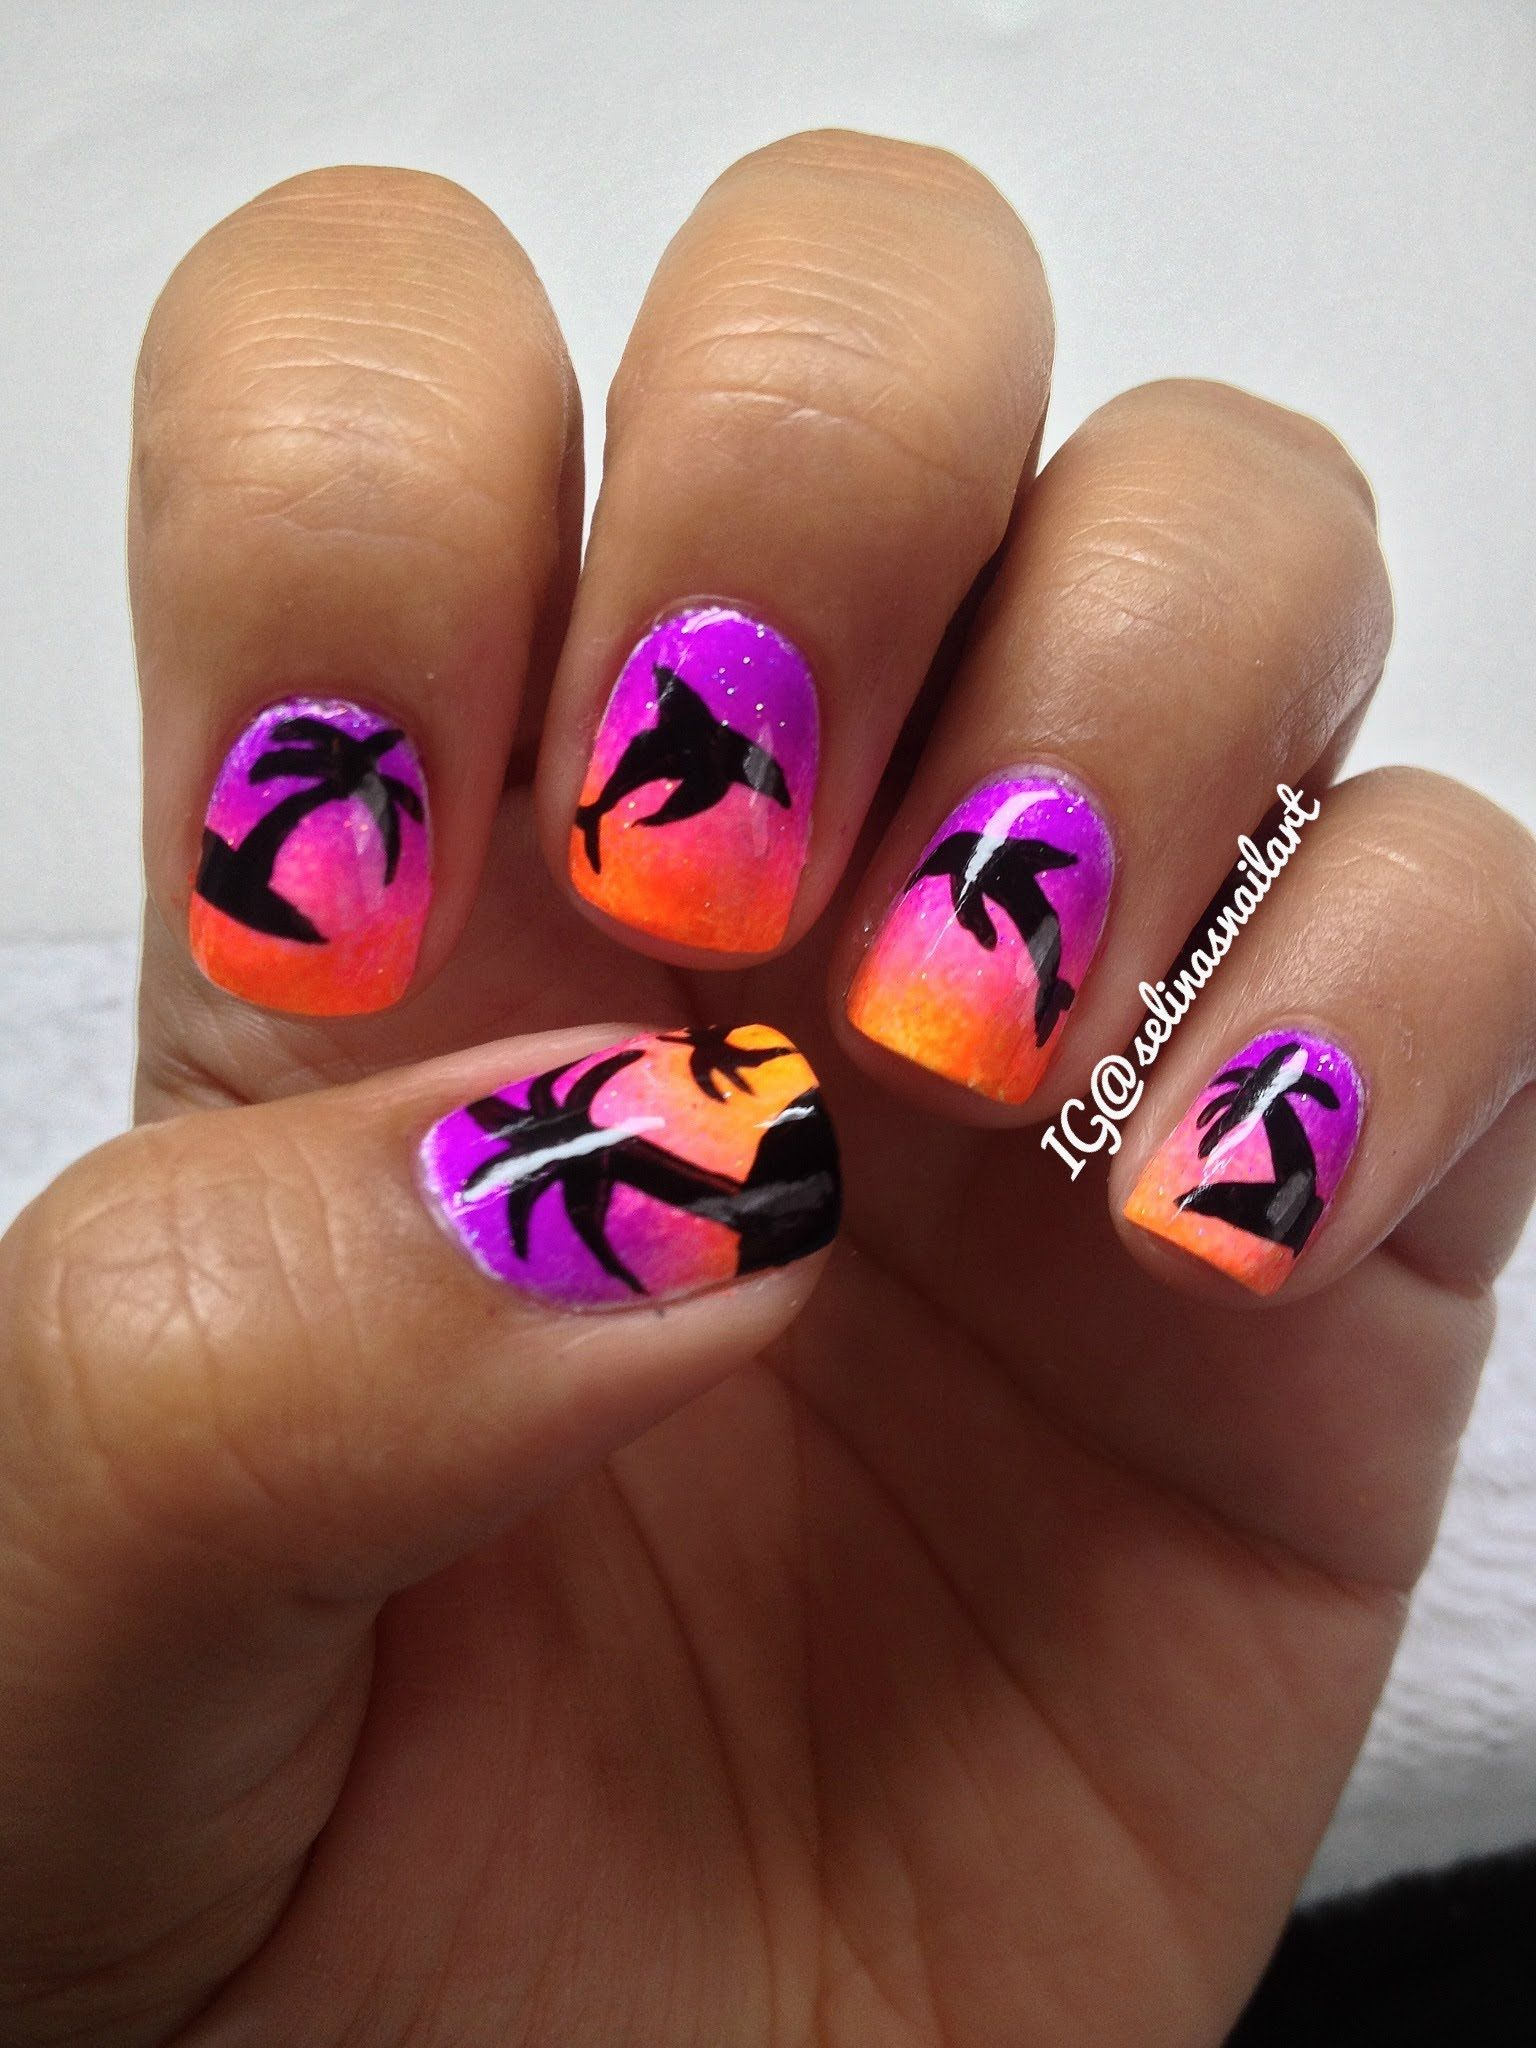 Palm Tree & Dolphin Nail Art Tutorial - Palm Tree & Dolphin Nail Art Tutorial Nails Pinterest